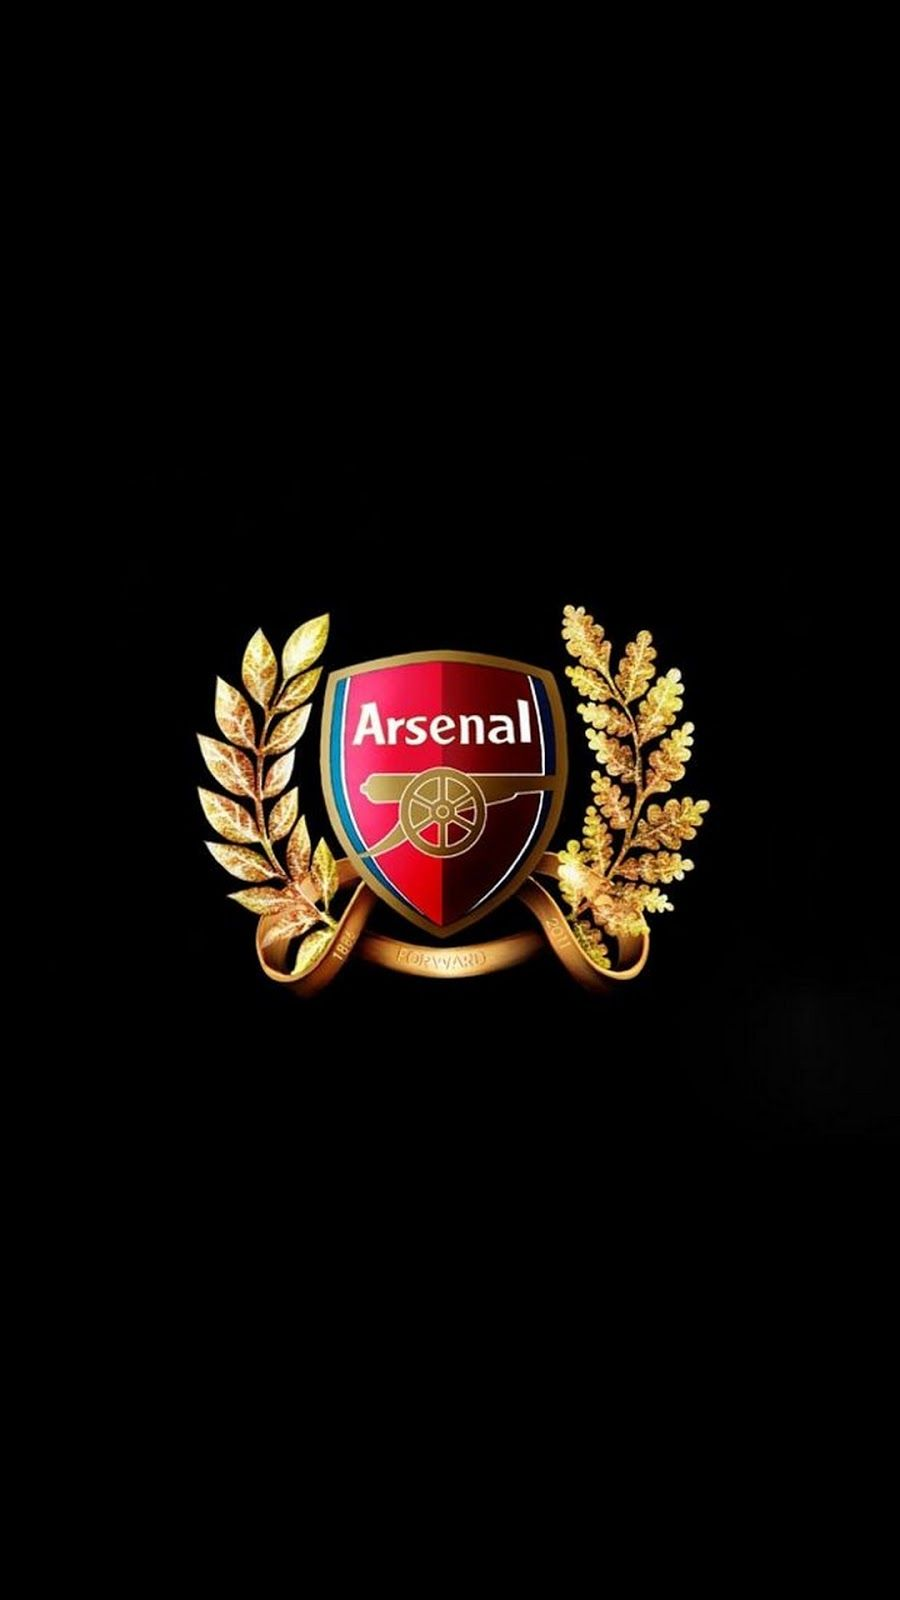 Arsenal Wallpaper Hd For Iphone X Series Arsenal Wallpapers Arsenal Badge Arsenal Logo